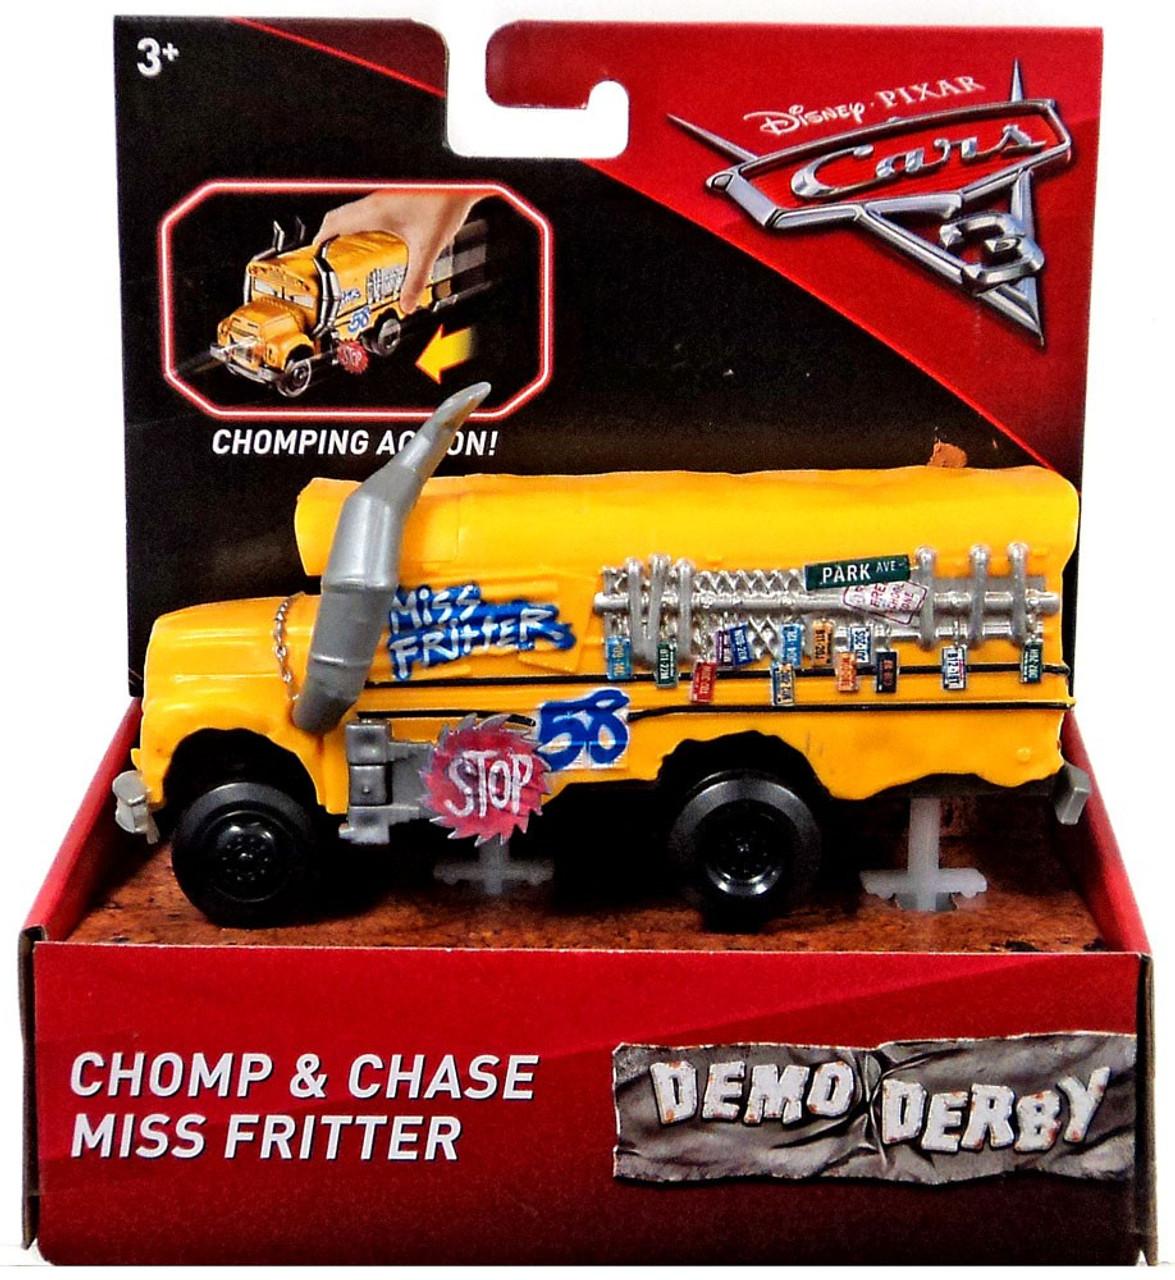 Disney Cars Cars 3 Demo Derby Chomp Chase Miss Fritter